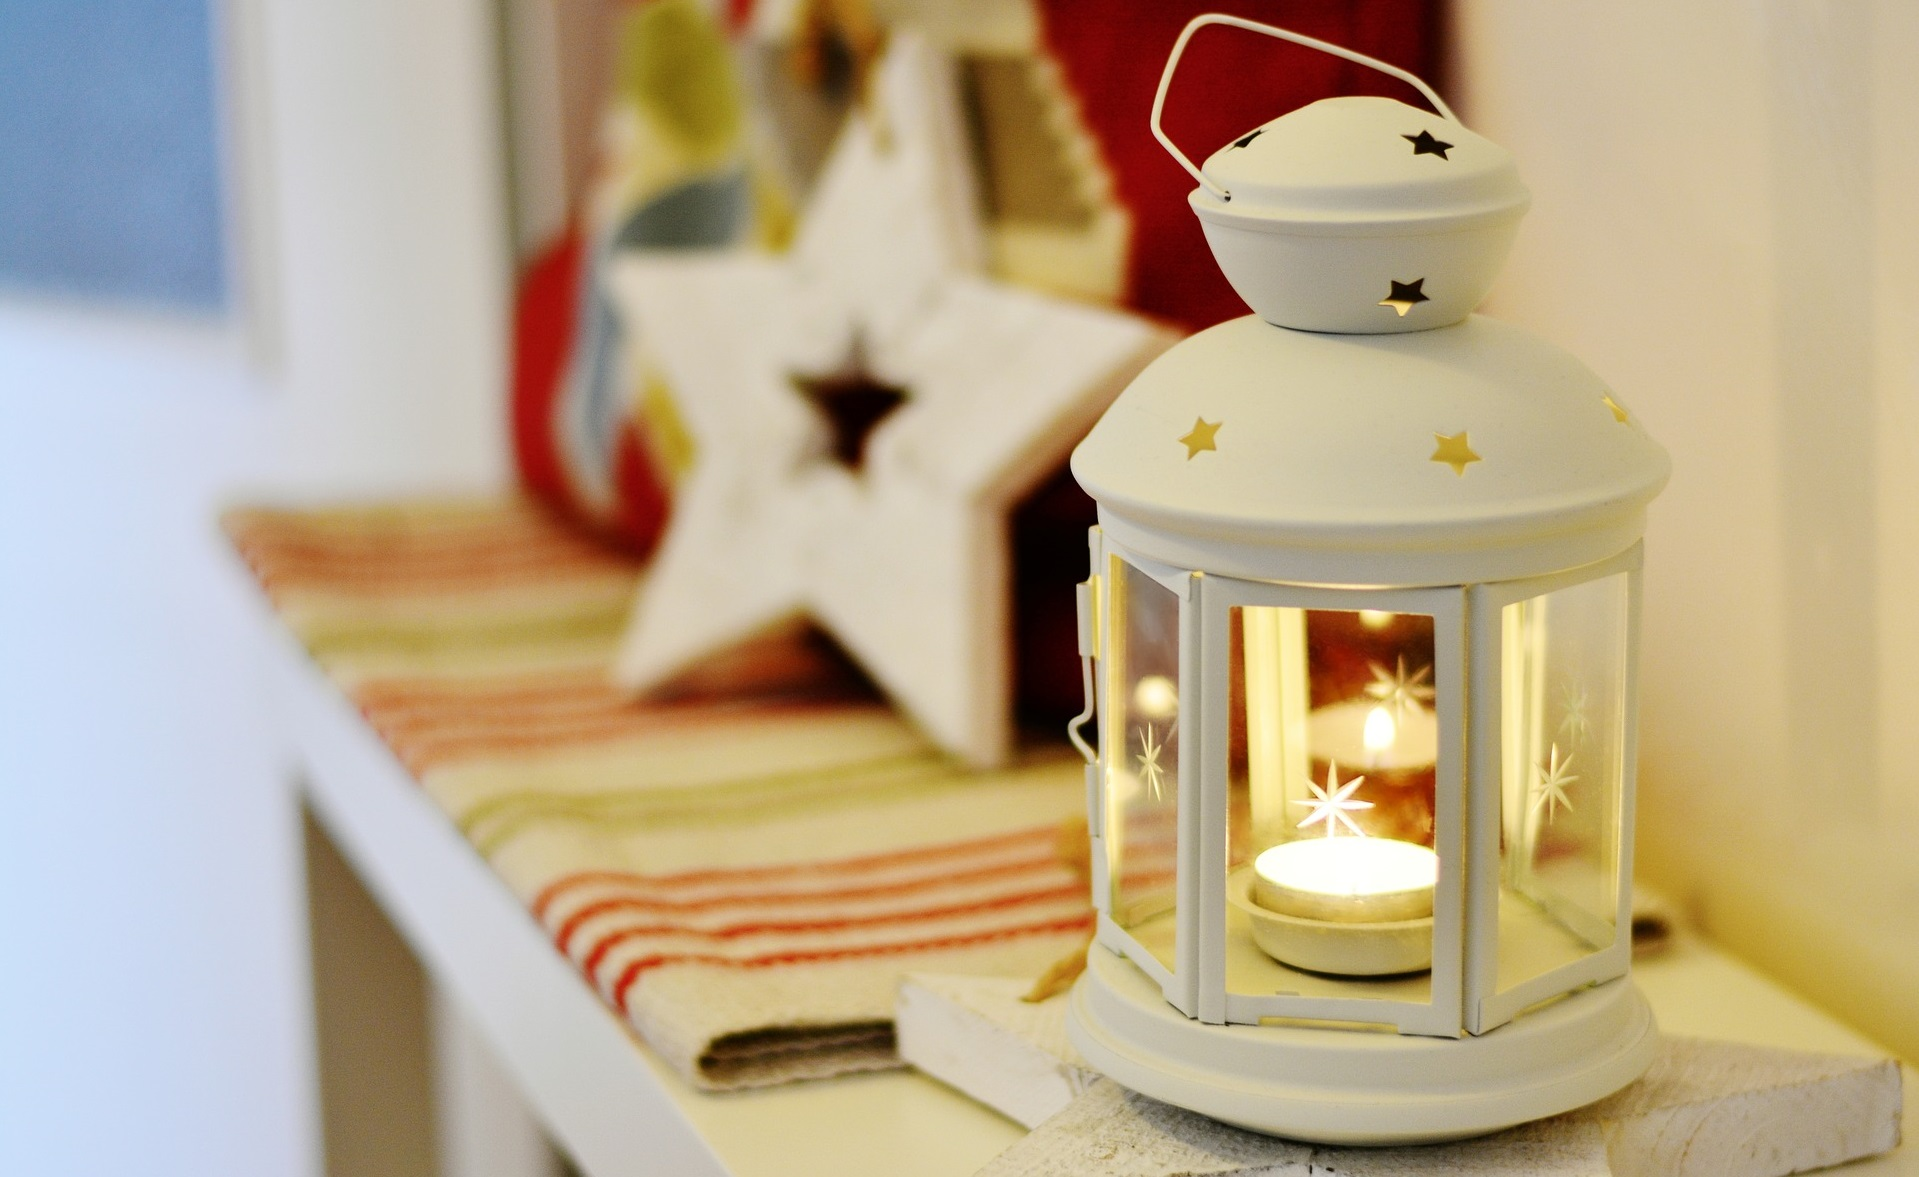 How tenants can make a rental property feel like home this Christmas